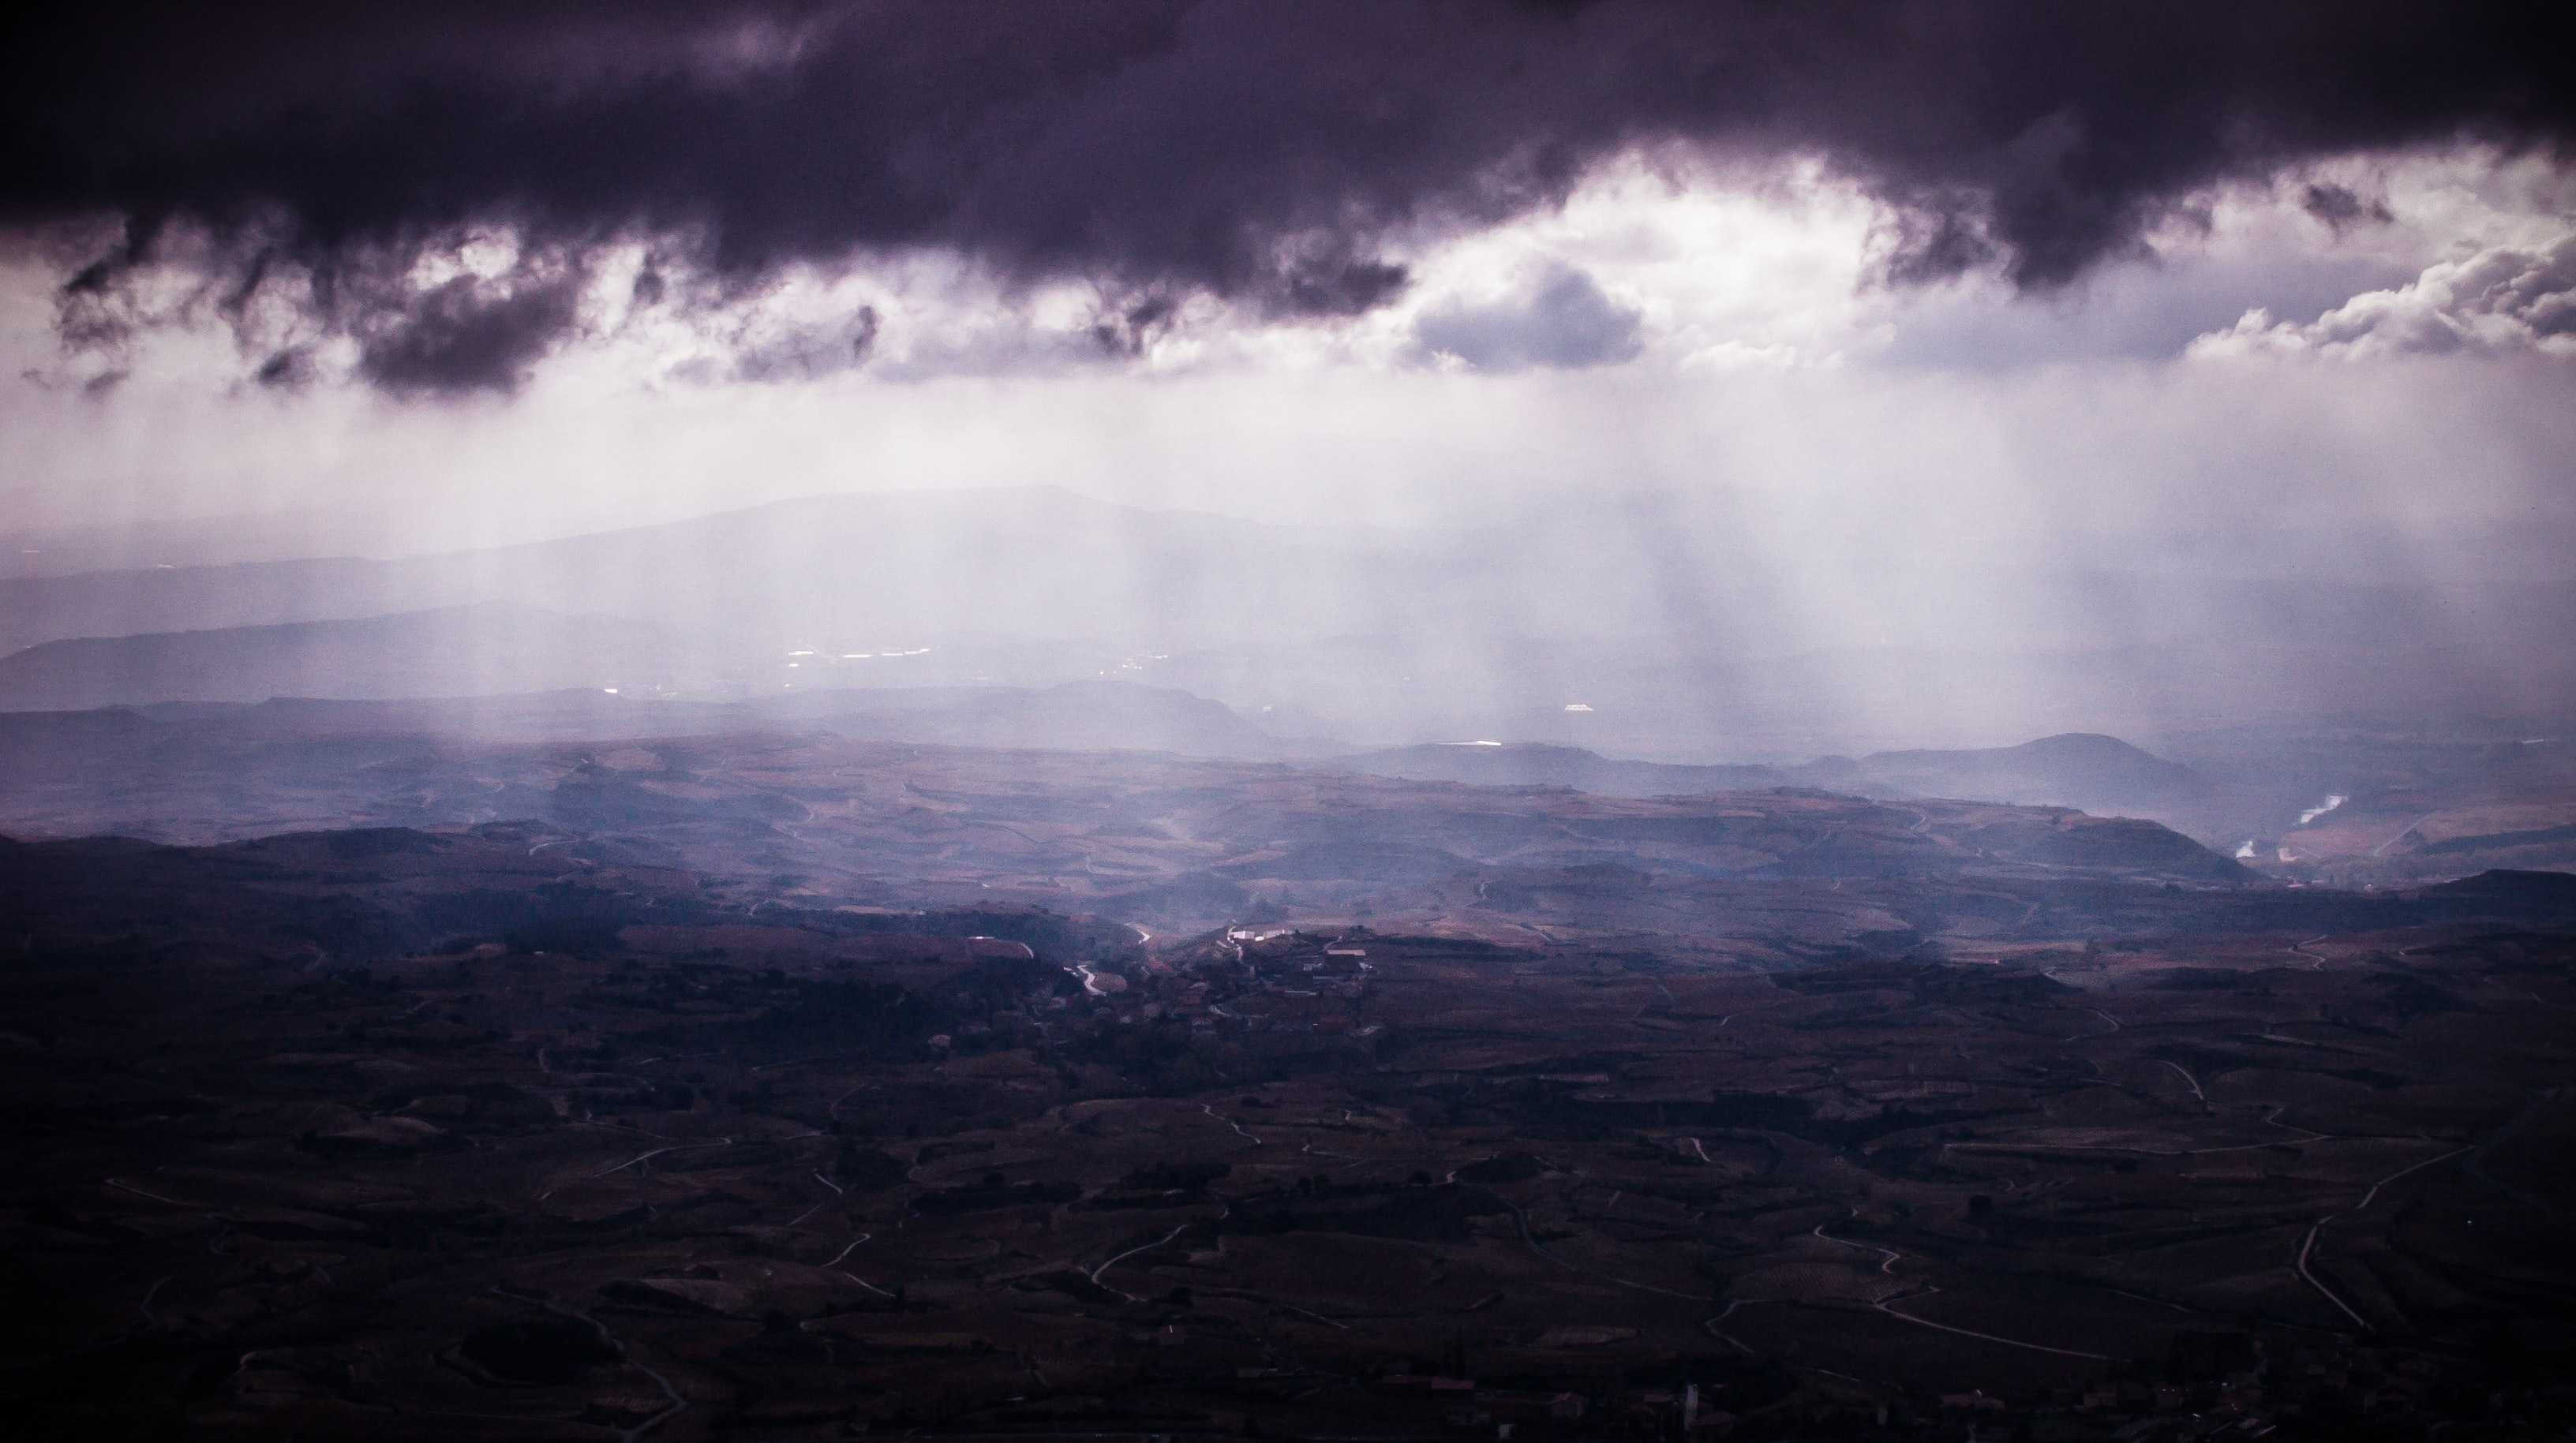 A vast rural landscape under faint light seeping in from the clouds